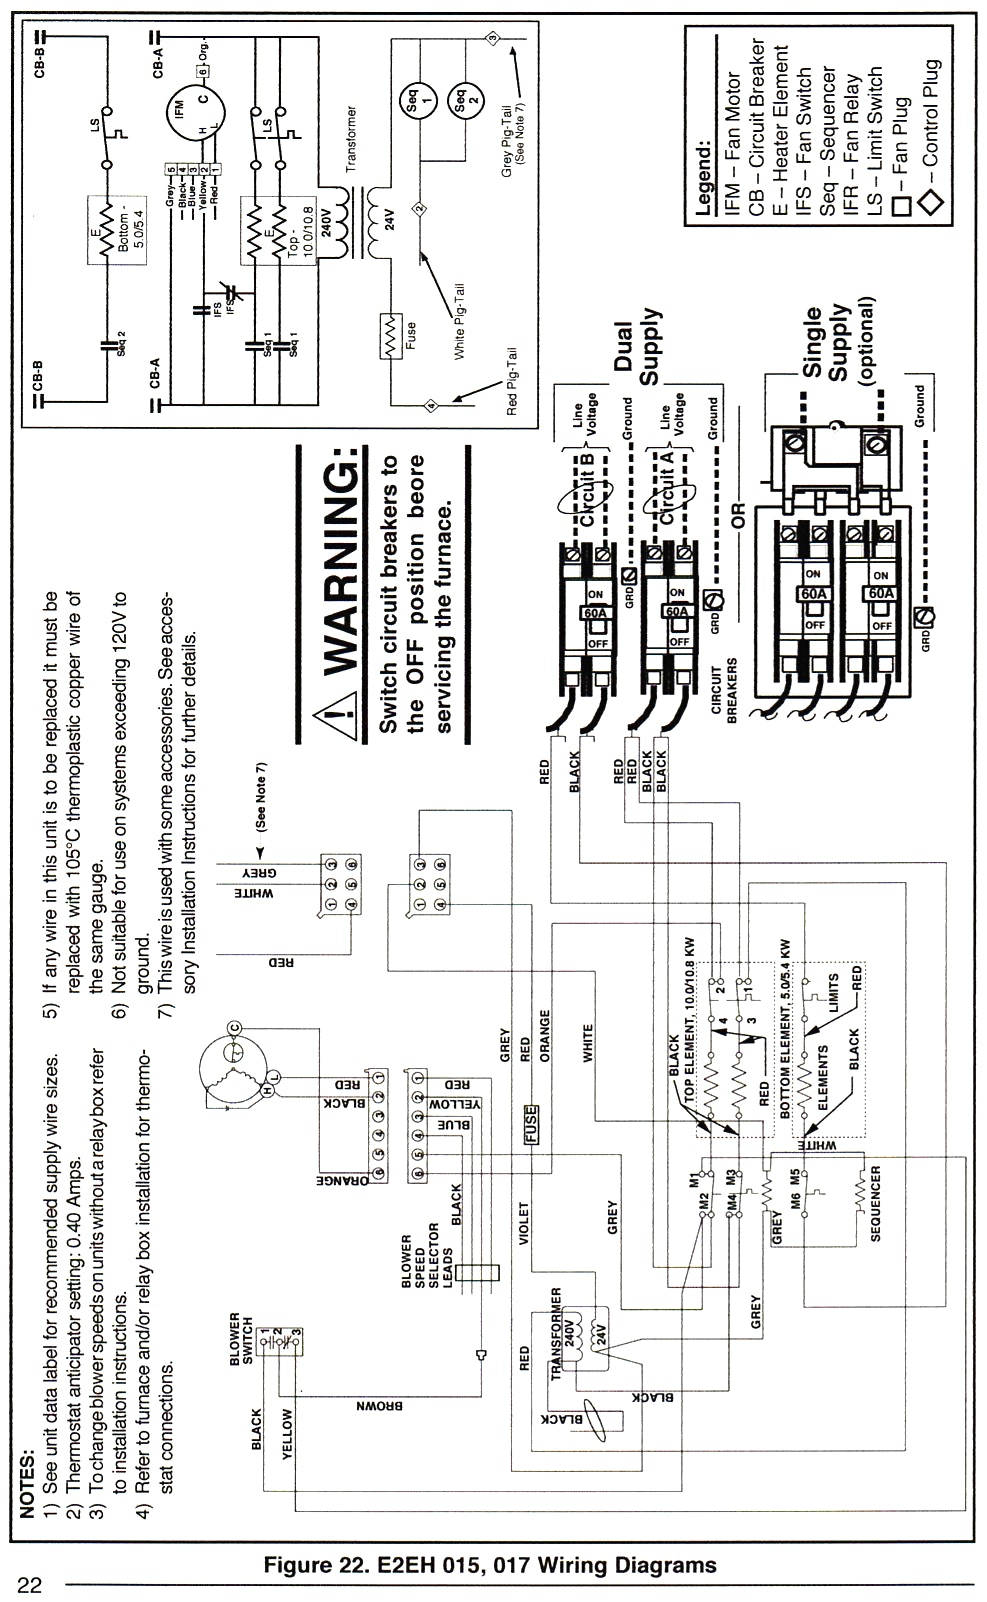 nordyne wiring diagram electric furnace Download-Intertherm Electric Furnace  Wiring Diagram For Nordyne Heat Pump. DOWNLOAD. Wiring Diagram ...